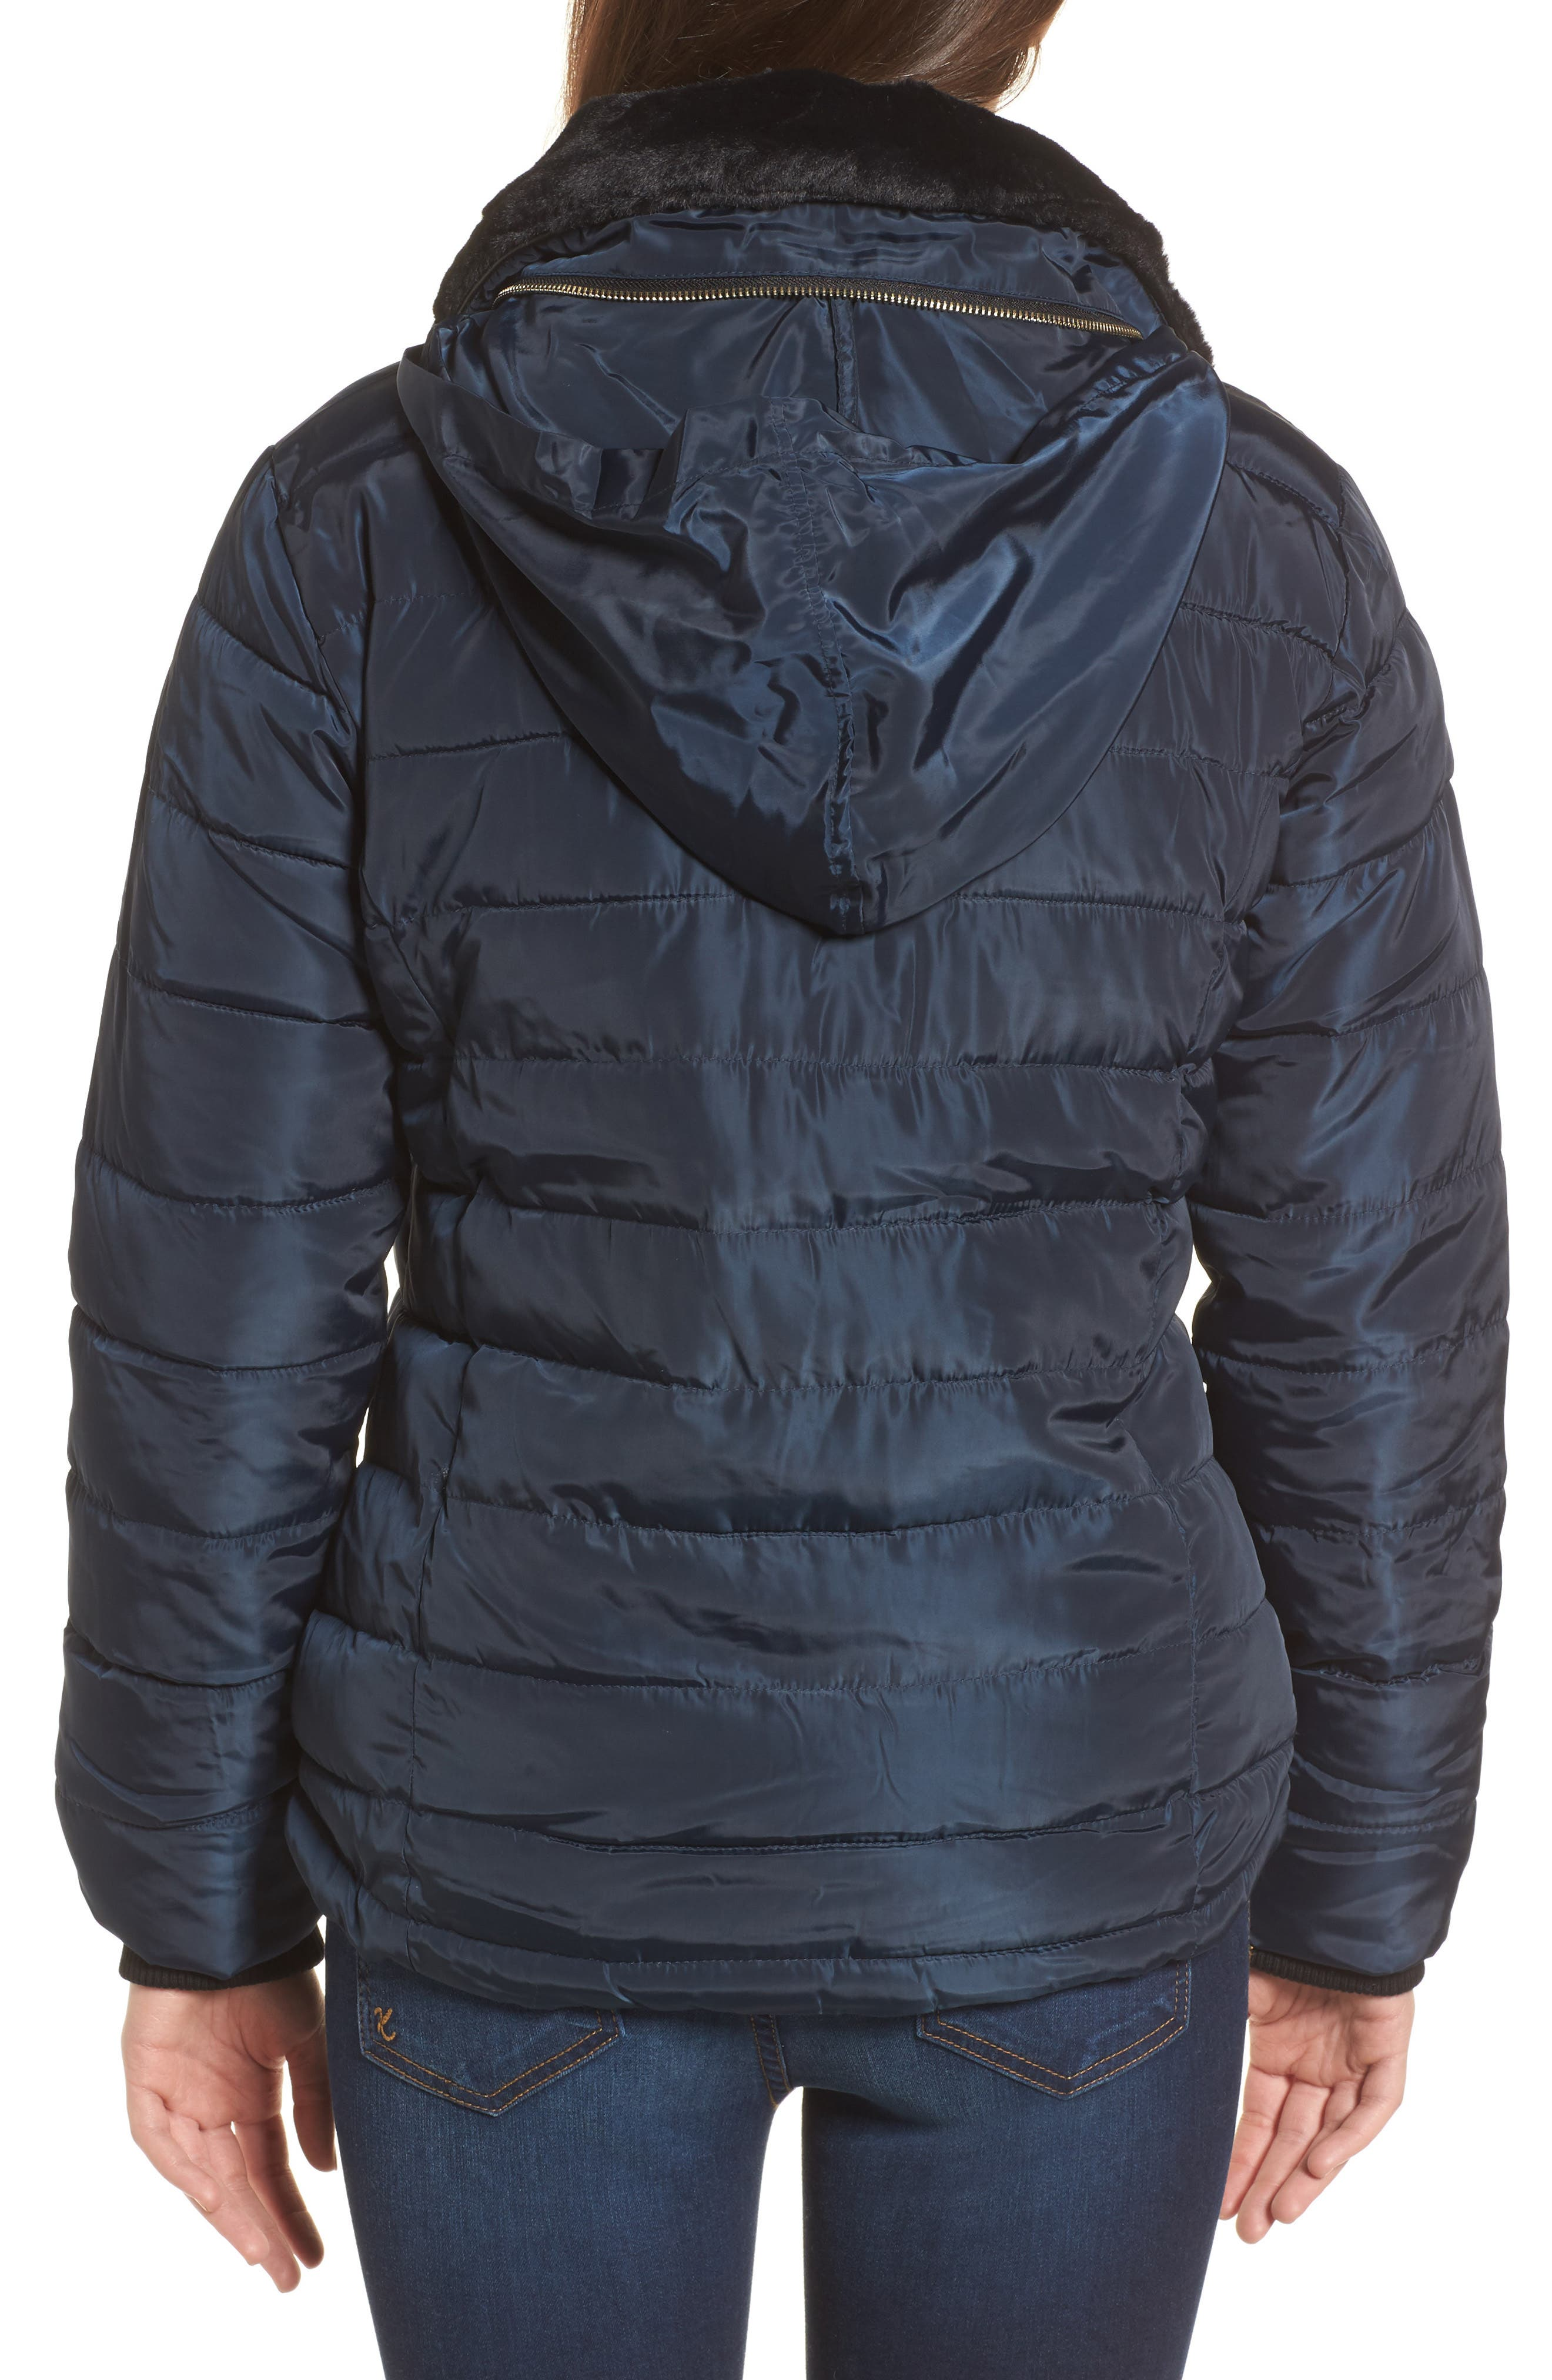 Puffer Jacket with Faux Fur Collar Lining,                             Alternate thumbnail 2, color,                             Navy Blue